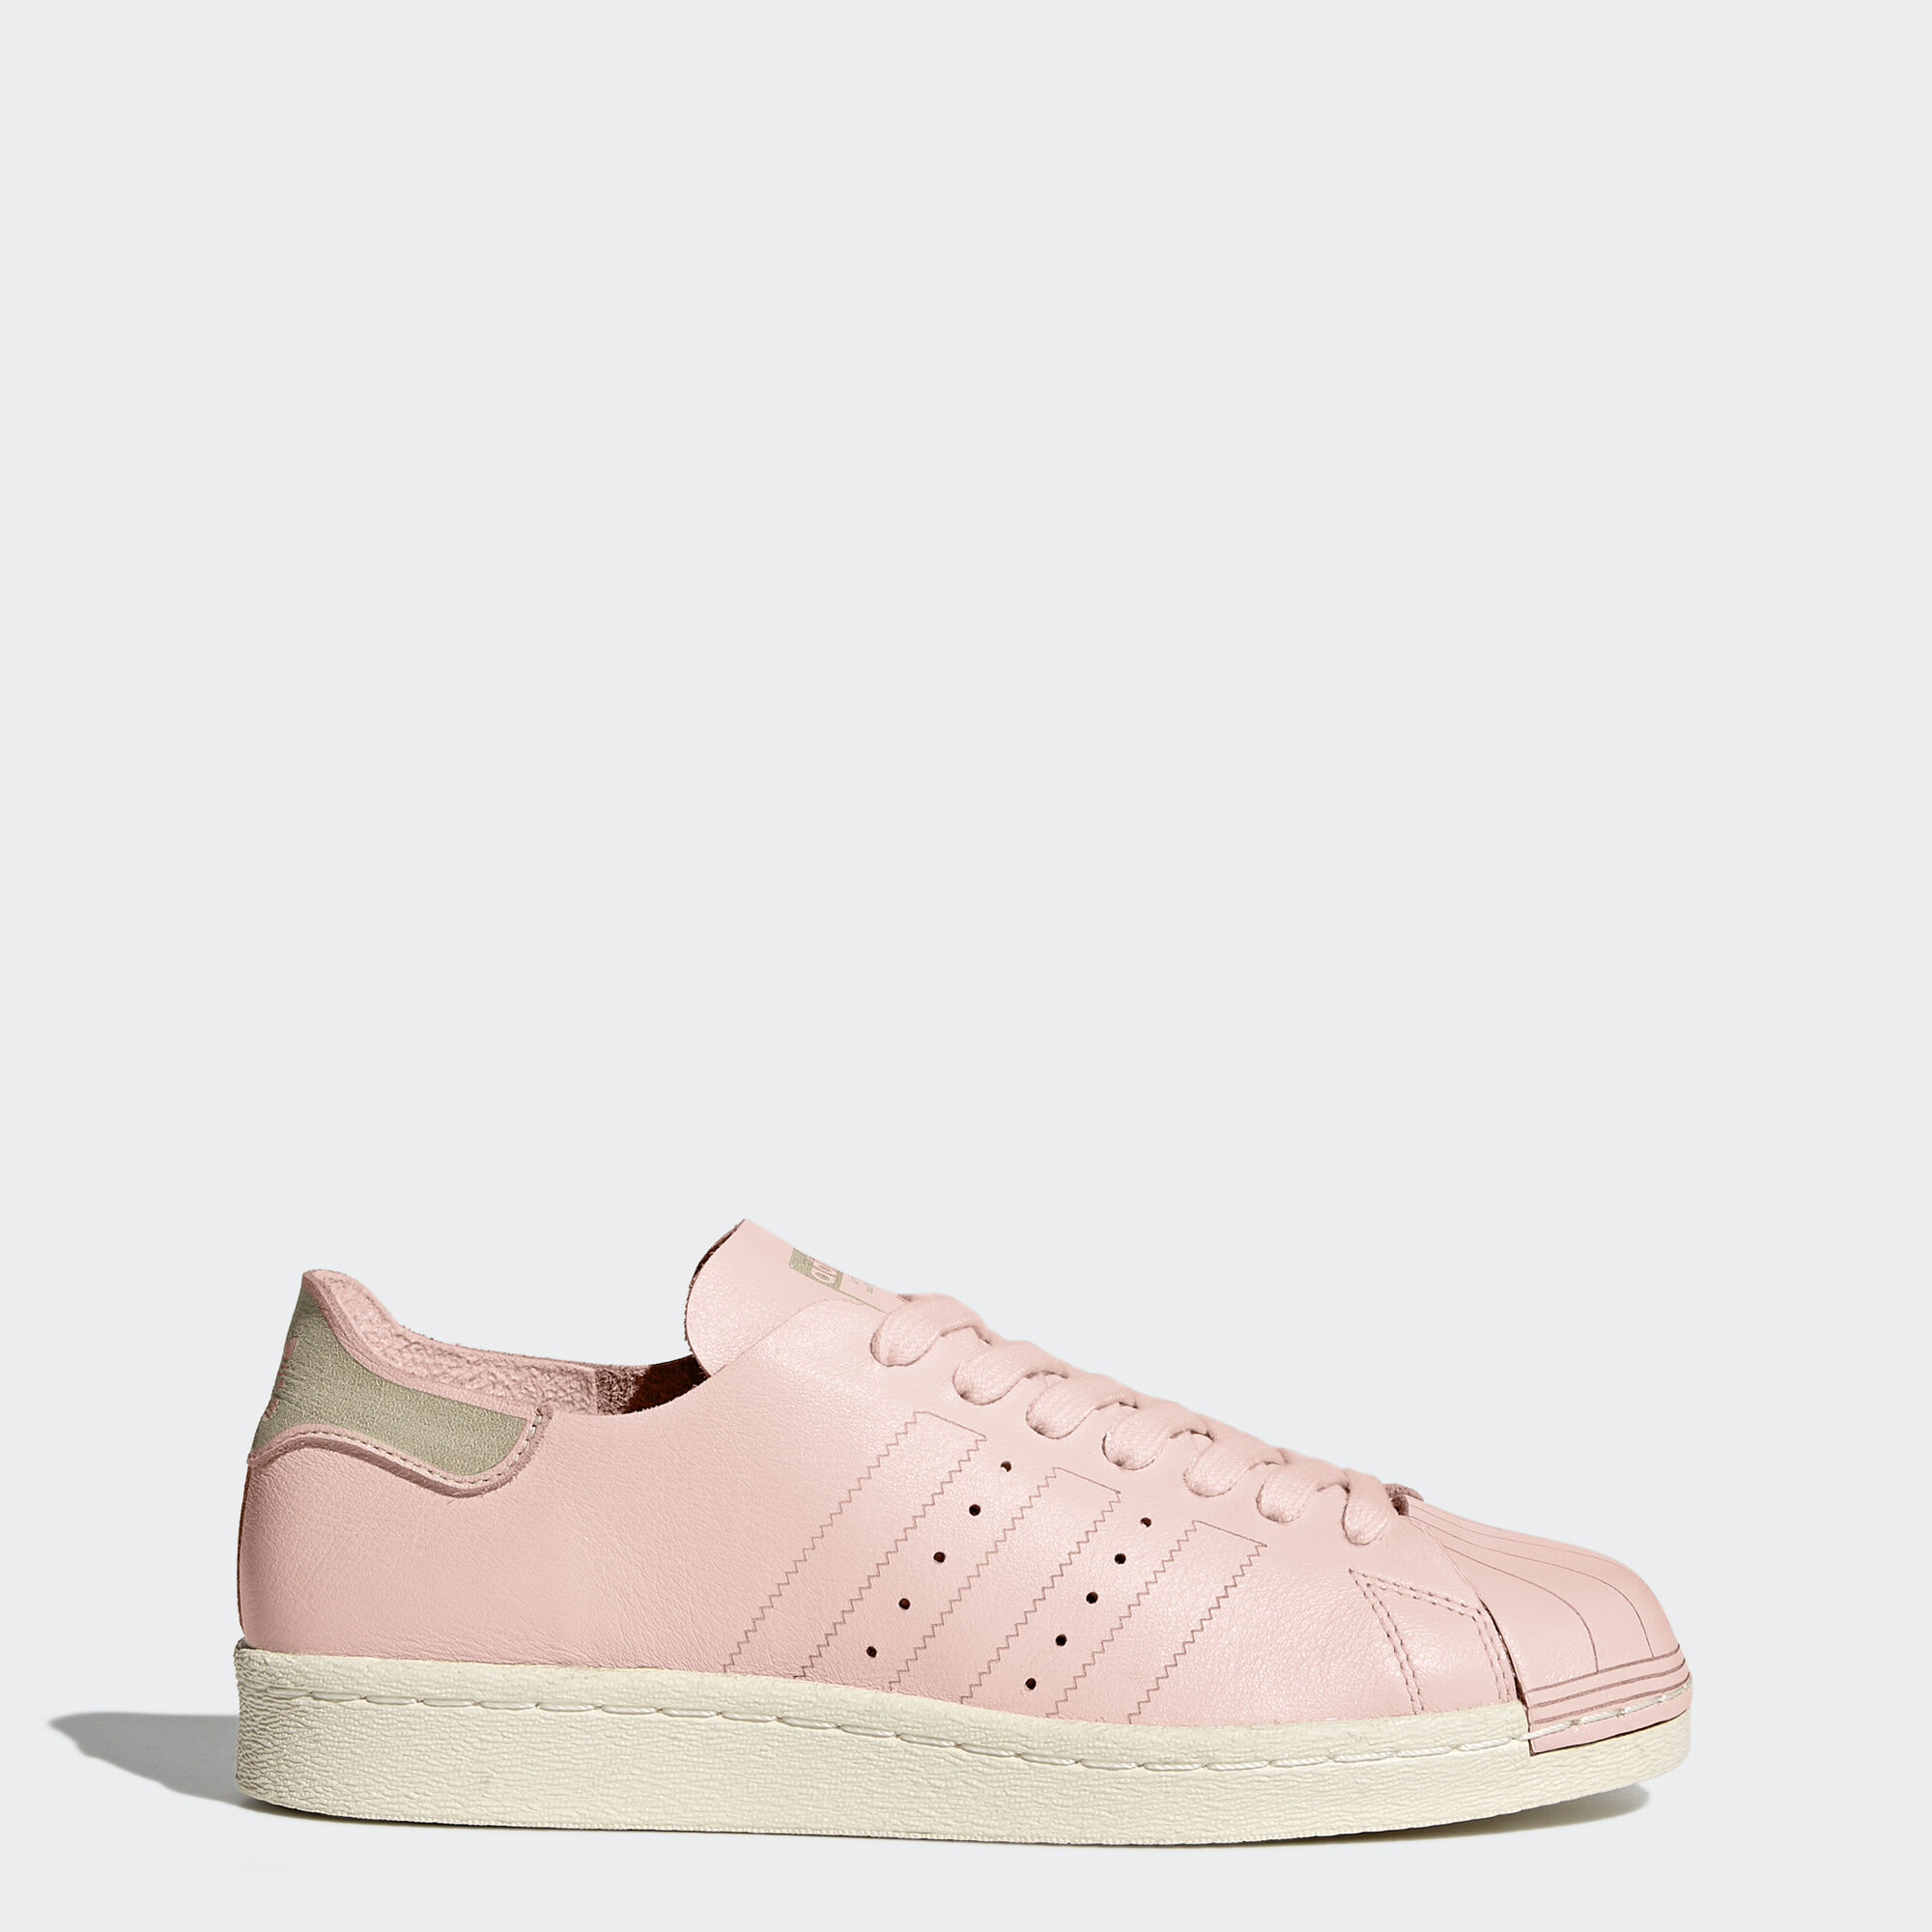 adidas - Superstar 80s Decon Shoes Icey Pink/Icey Pink/Off White BZ0500